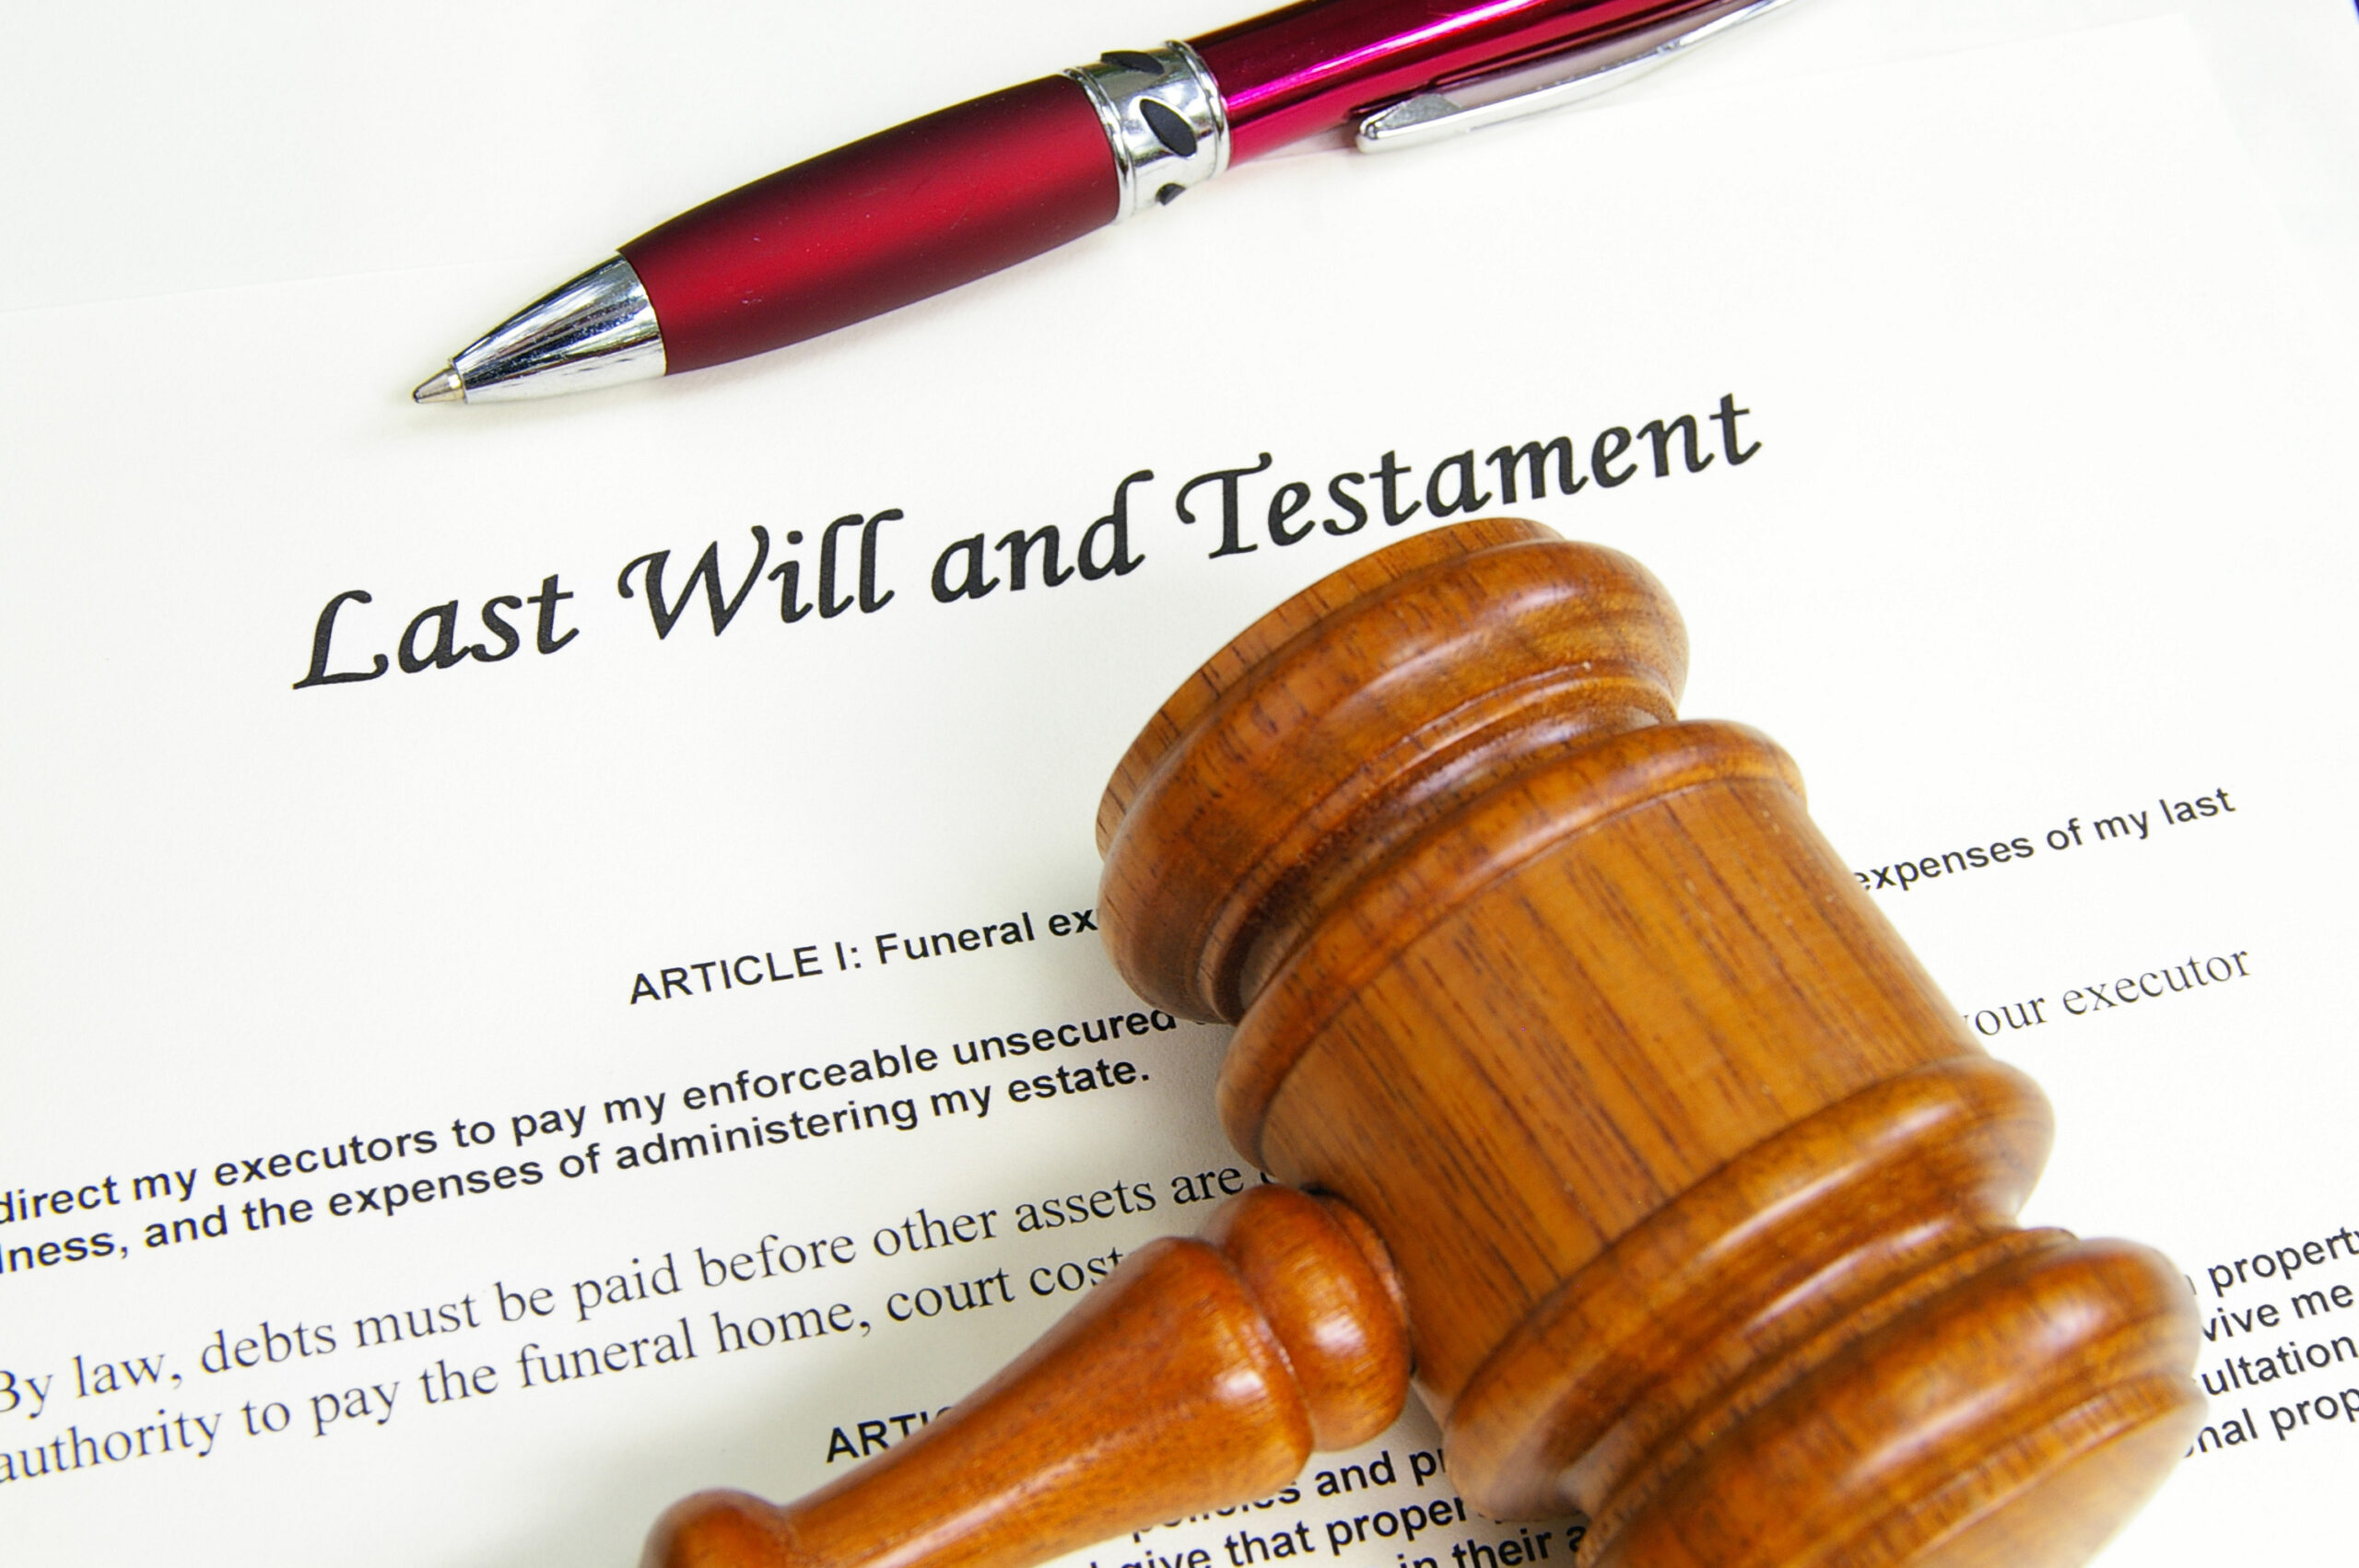 Last will and testament probate court